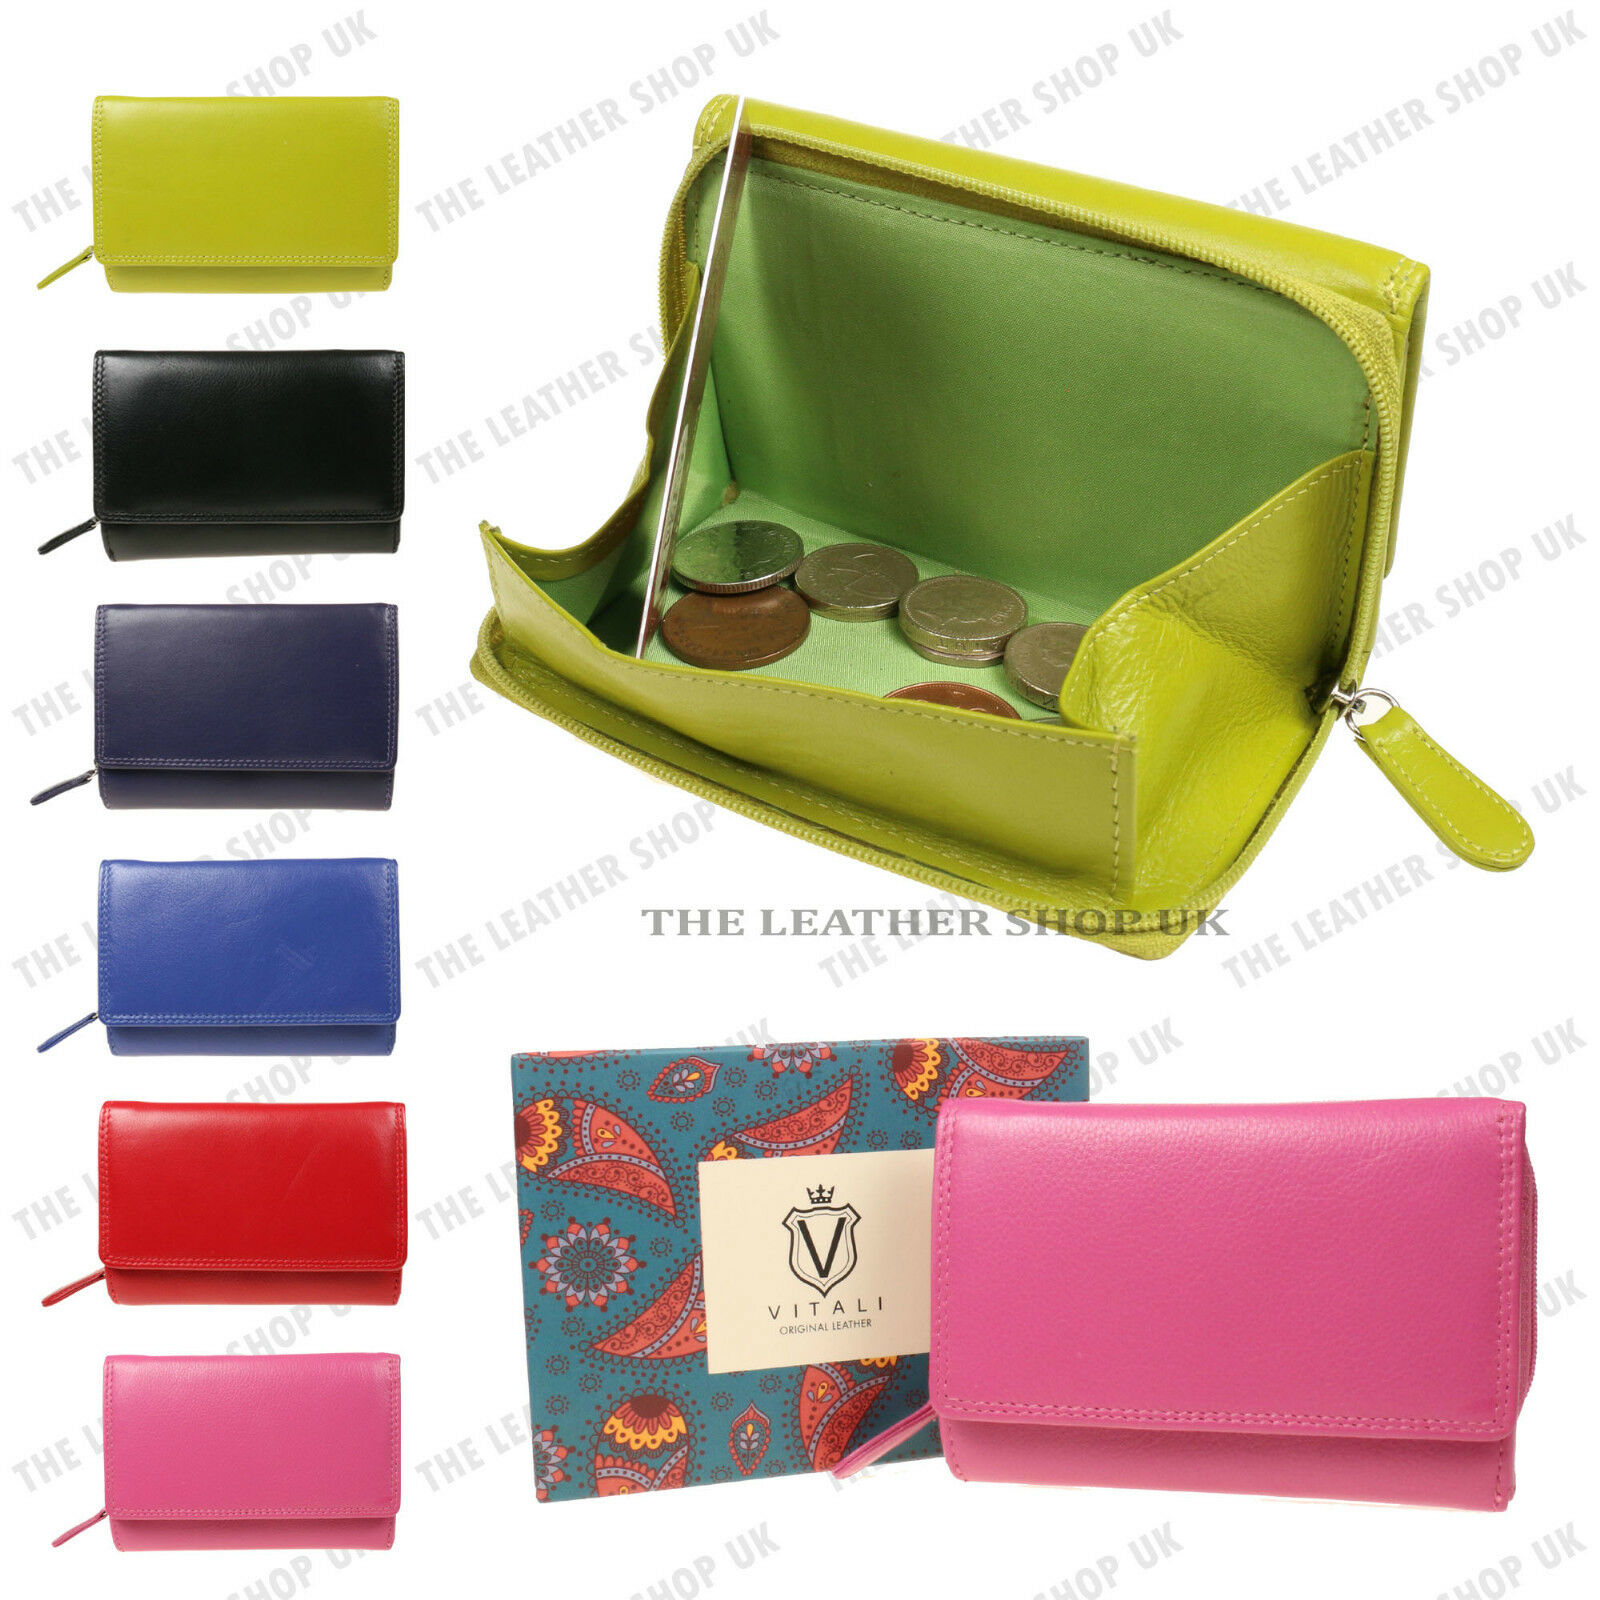 LADIES LEATHER COIN PURSES VITALI BRAND NEW CREDIT CARD HOLDER